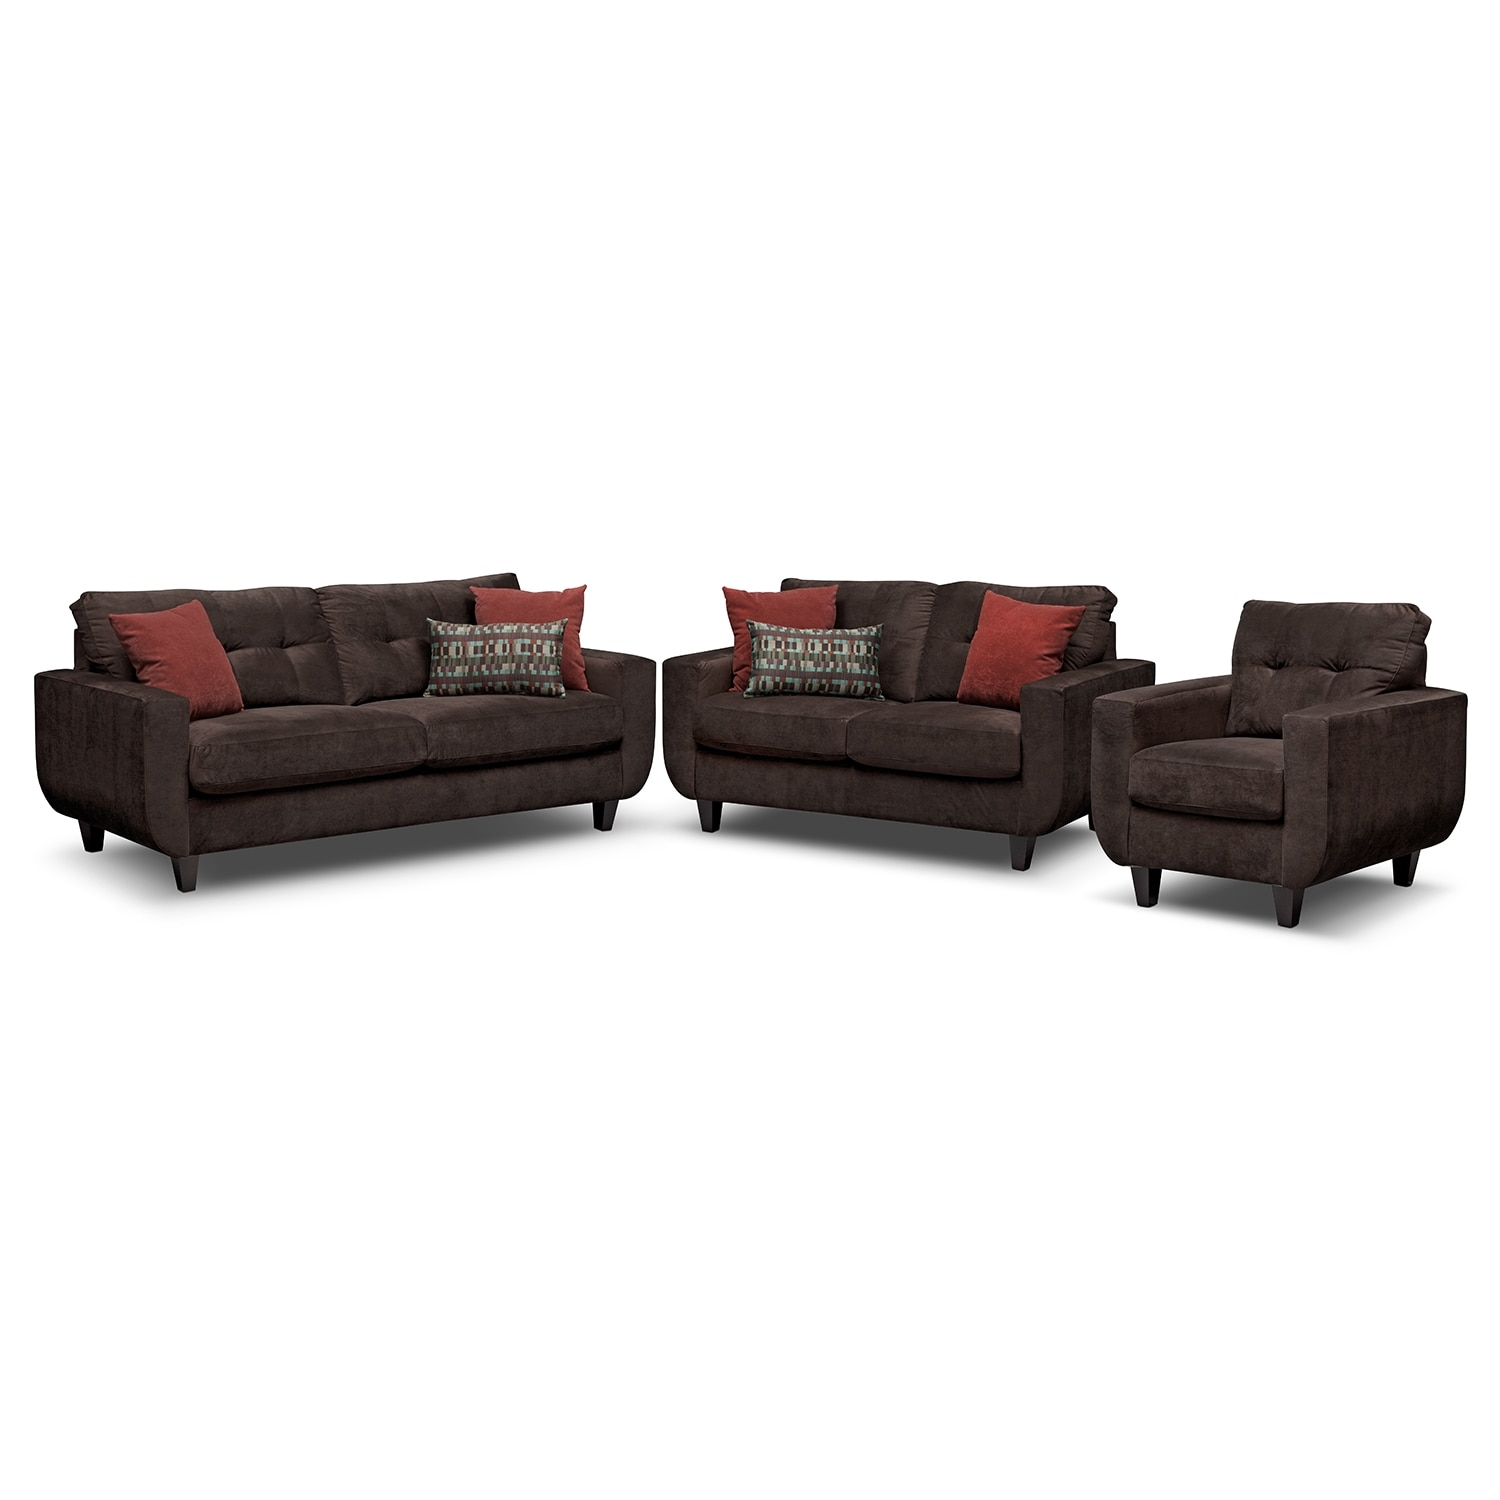 West Village Sofa, Loveseat and Chair Set - Chocolate